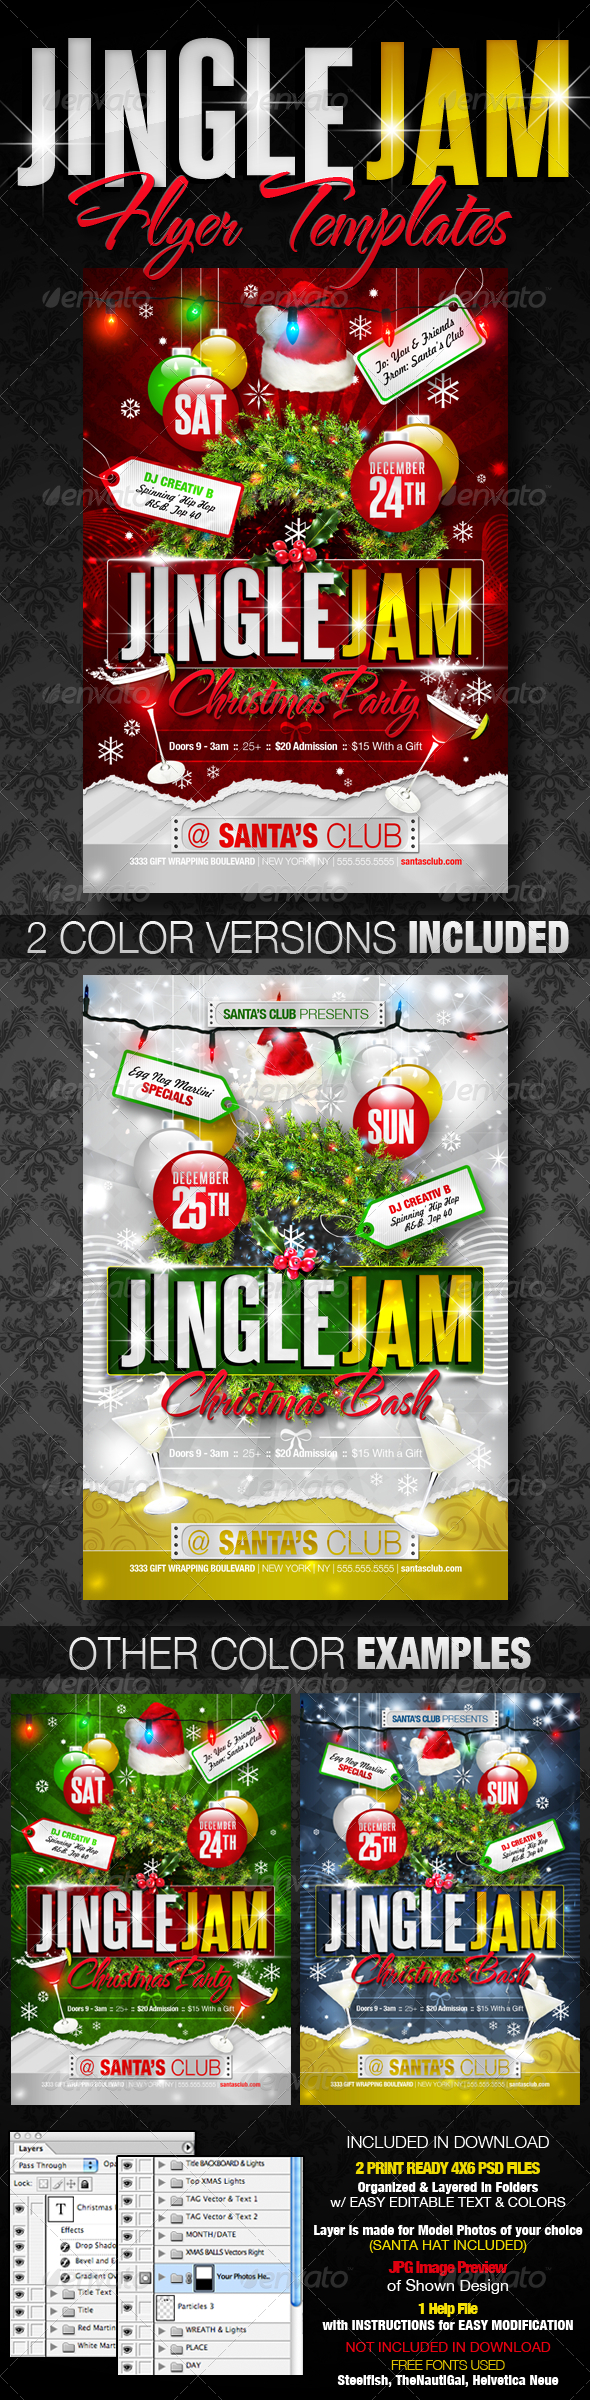 Jingle Jam Christmas Party Flyer Templates - Clubs & Parties Events